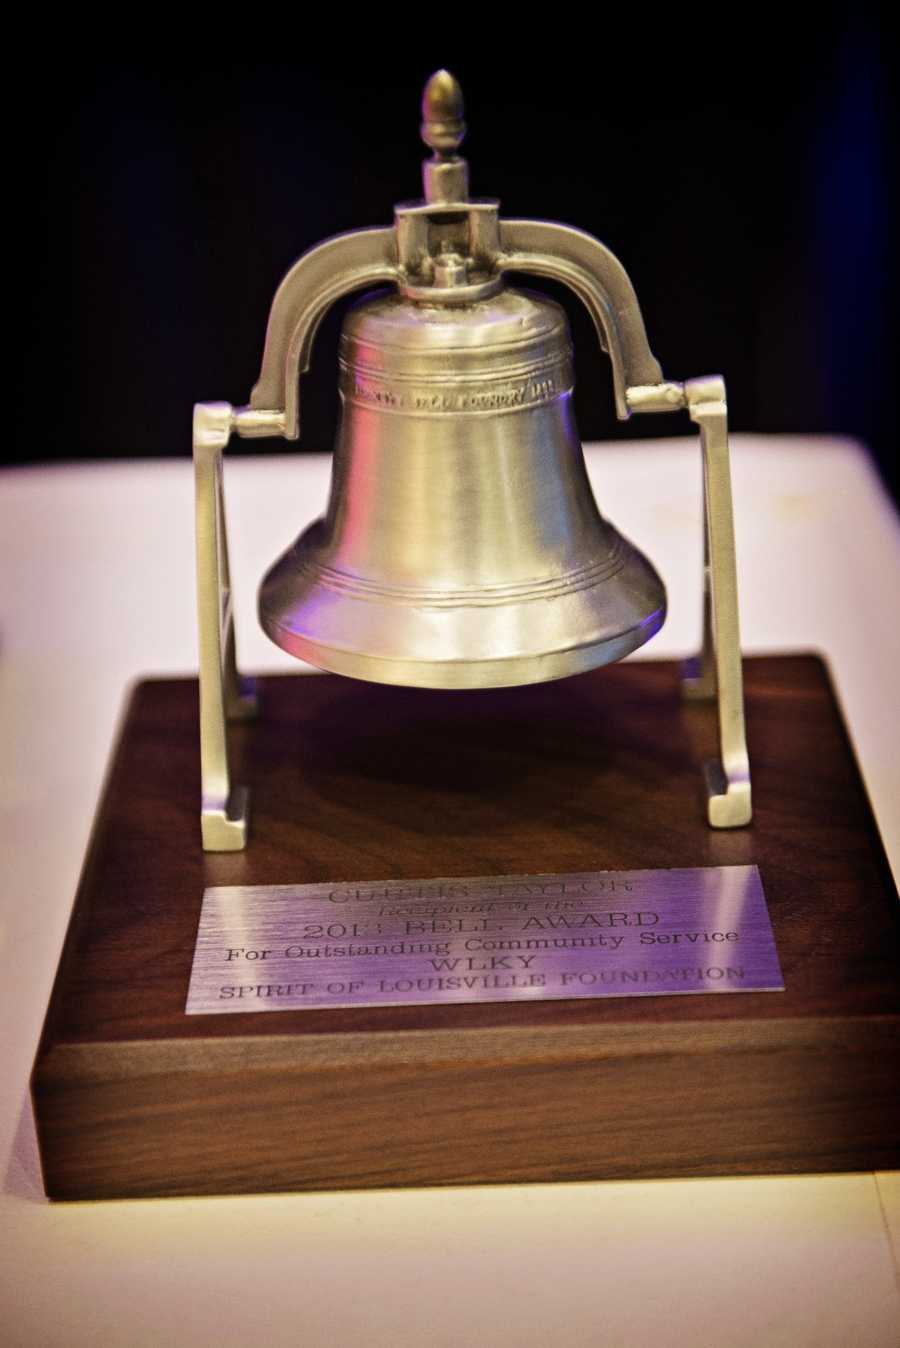 Images from the 2013 WLKY Bell Awards held on Oct. 9, 2013. (Photos by Chloe Skaggs)